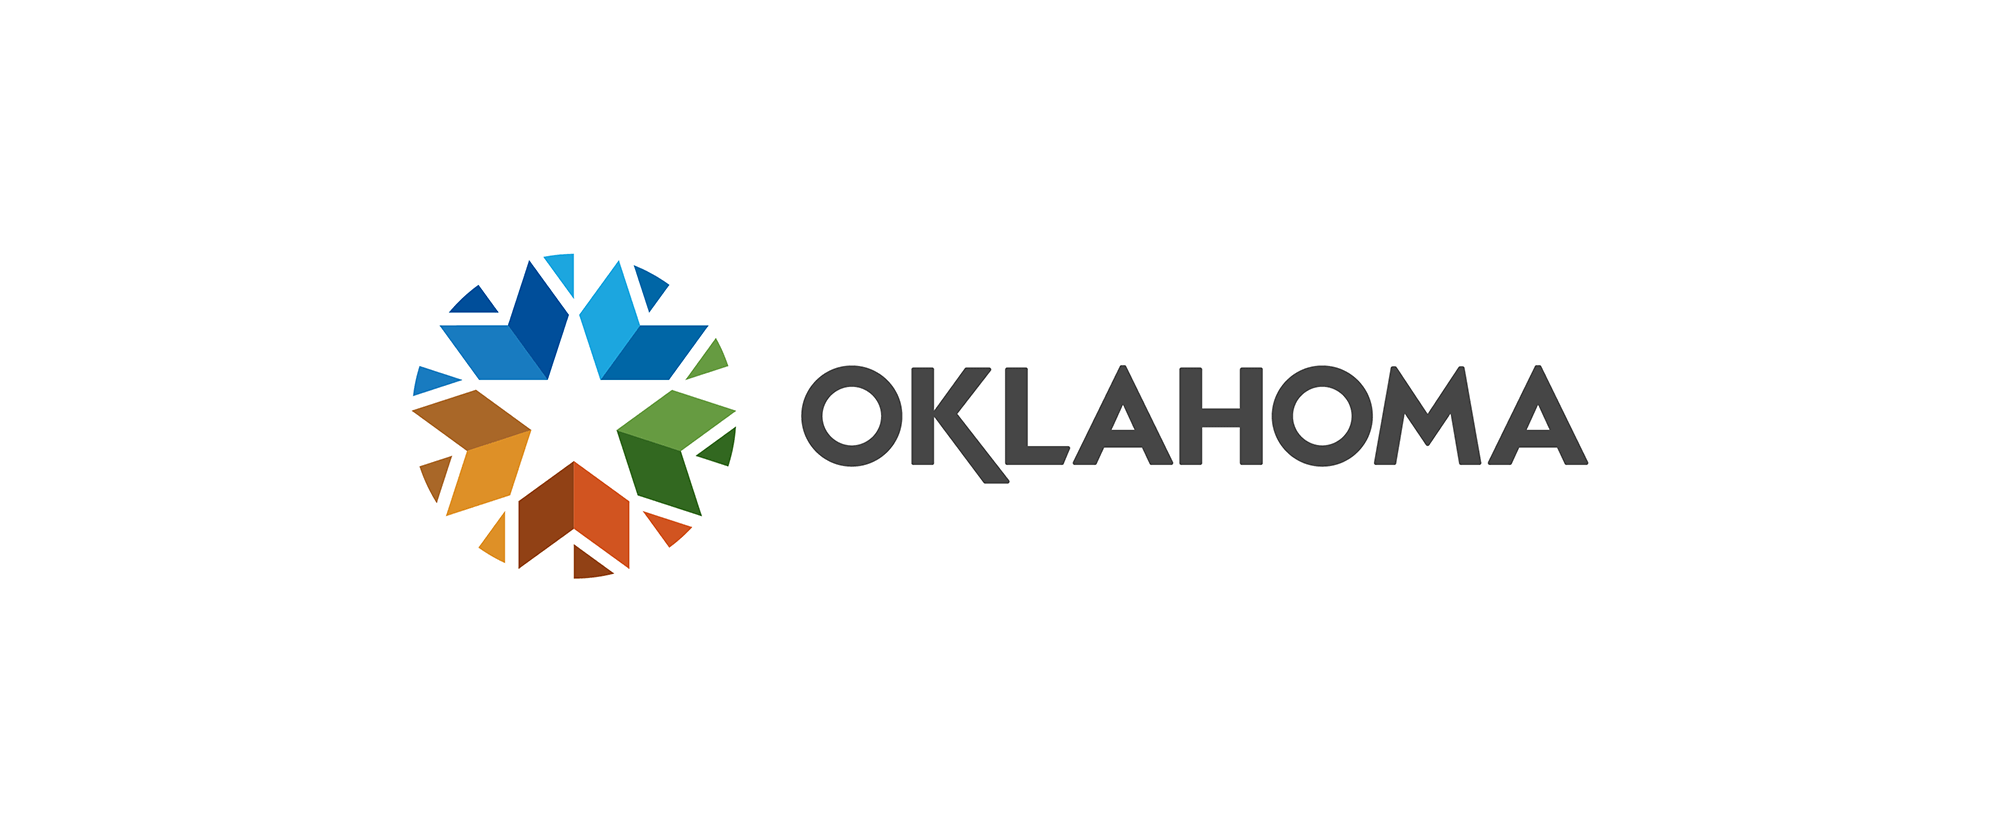 New Logo for the State of Oklahoma